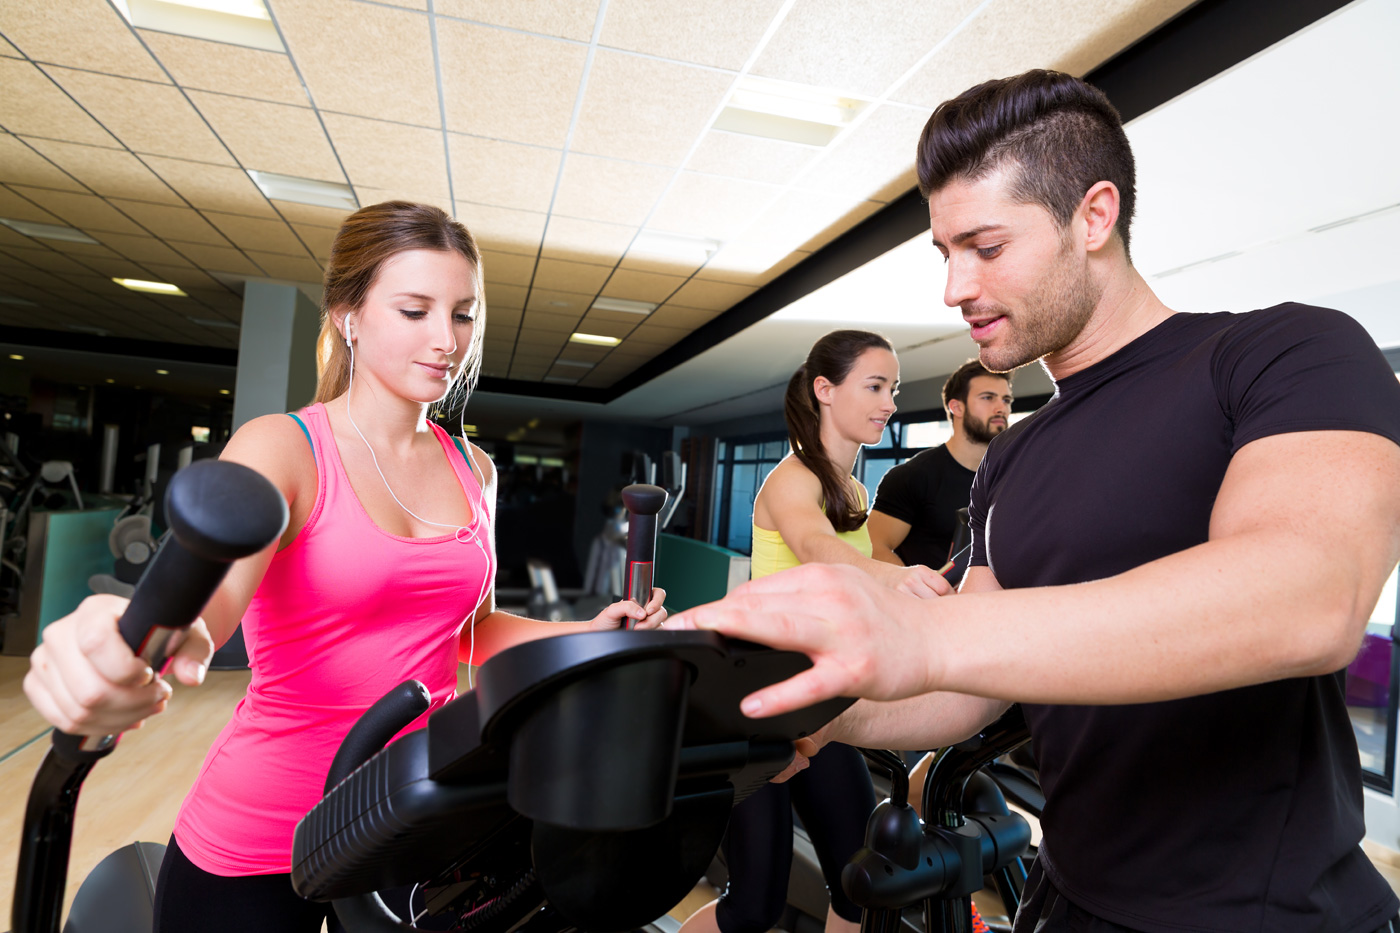 Beginner Elliptical Workout Routine To Get Your Metabolism